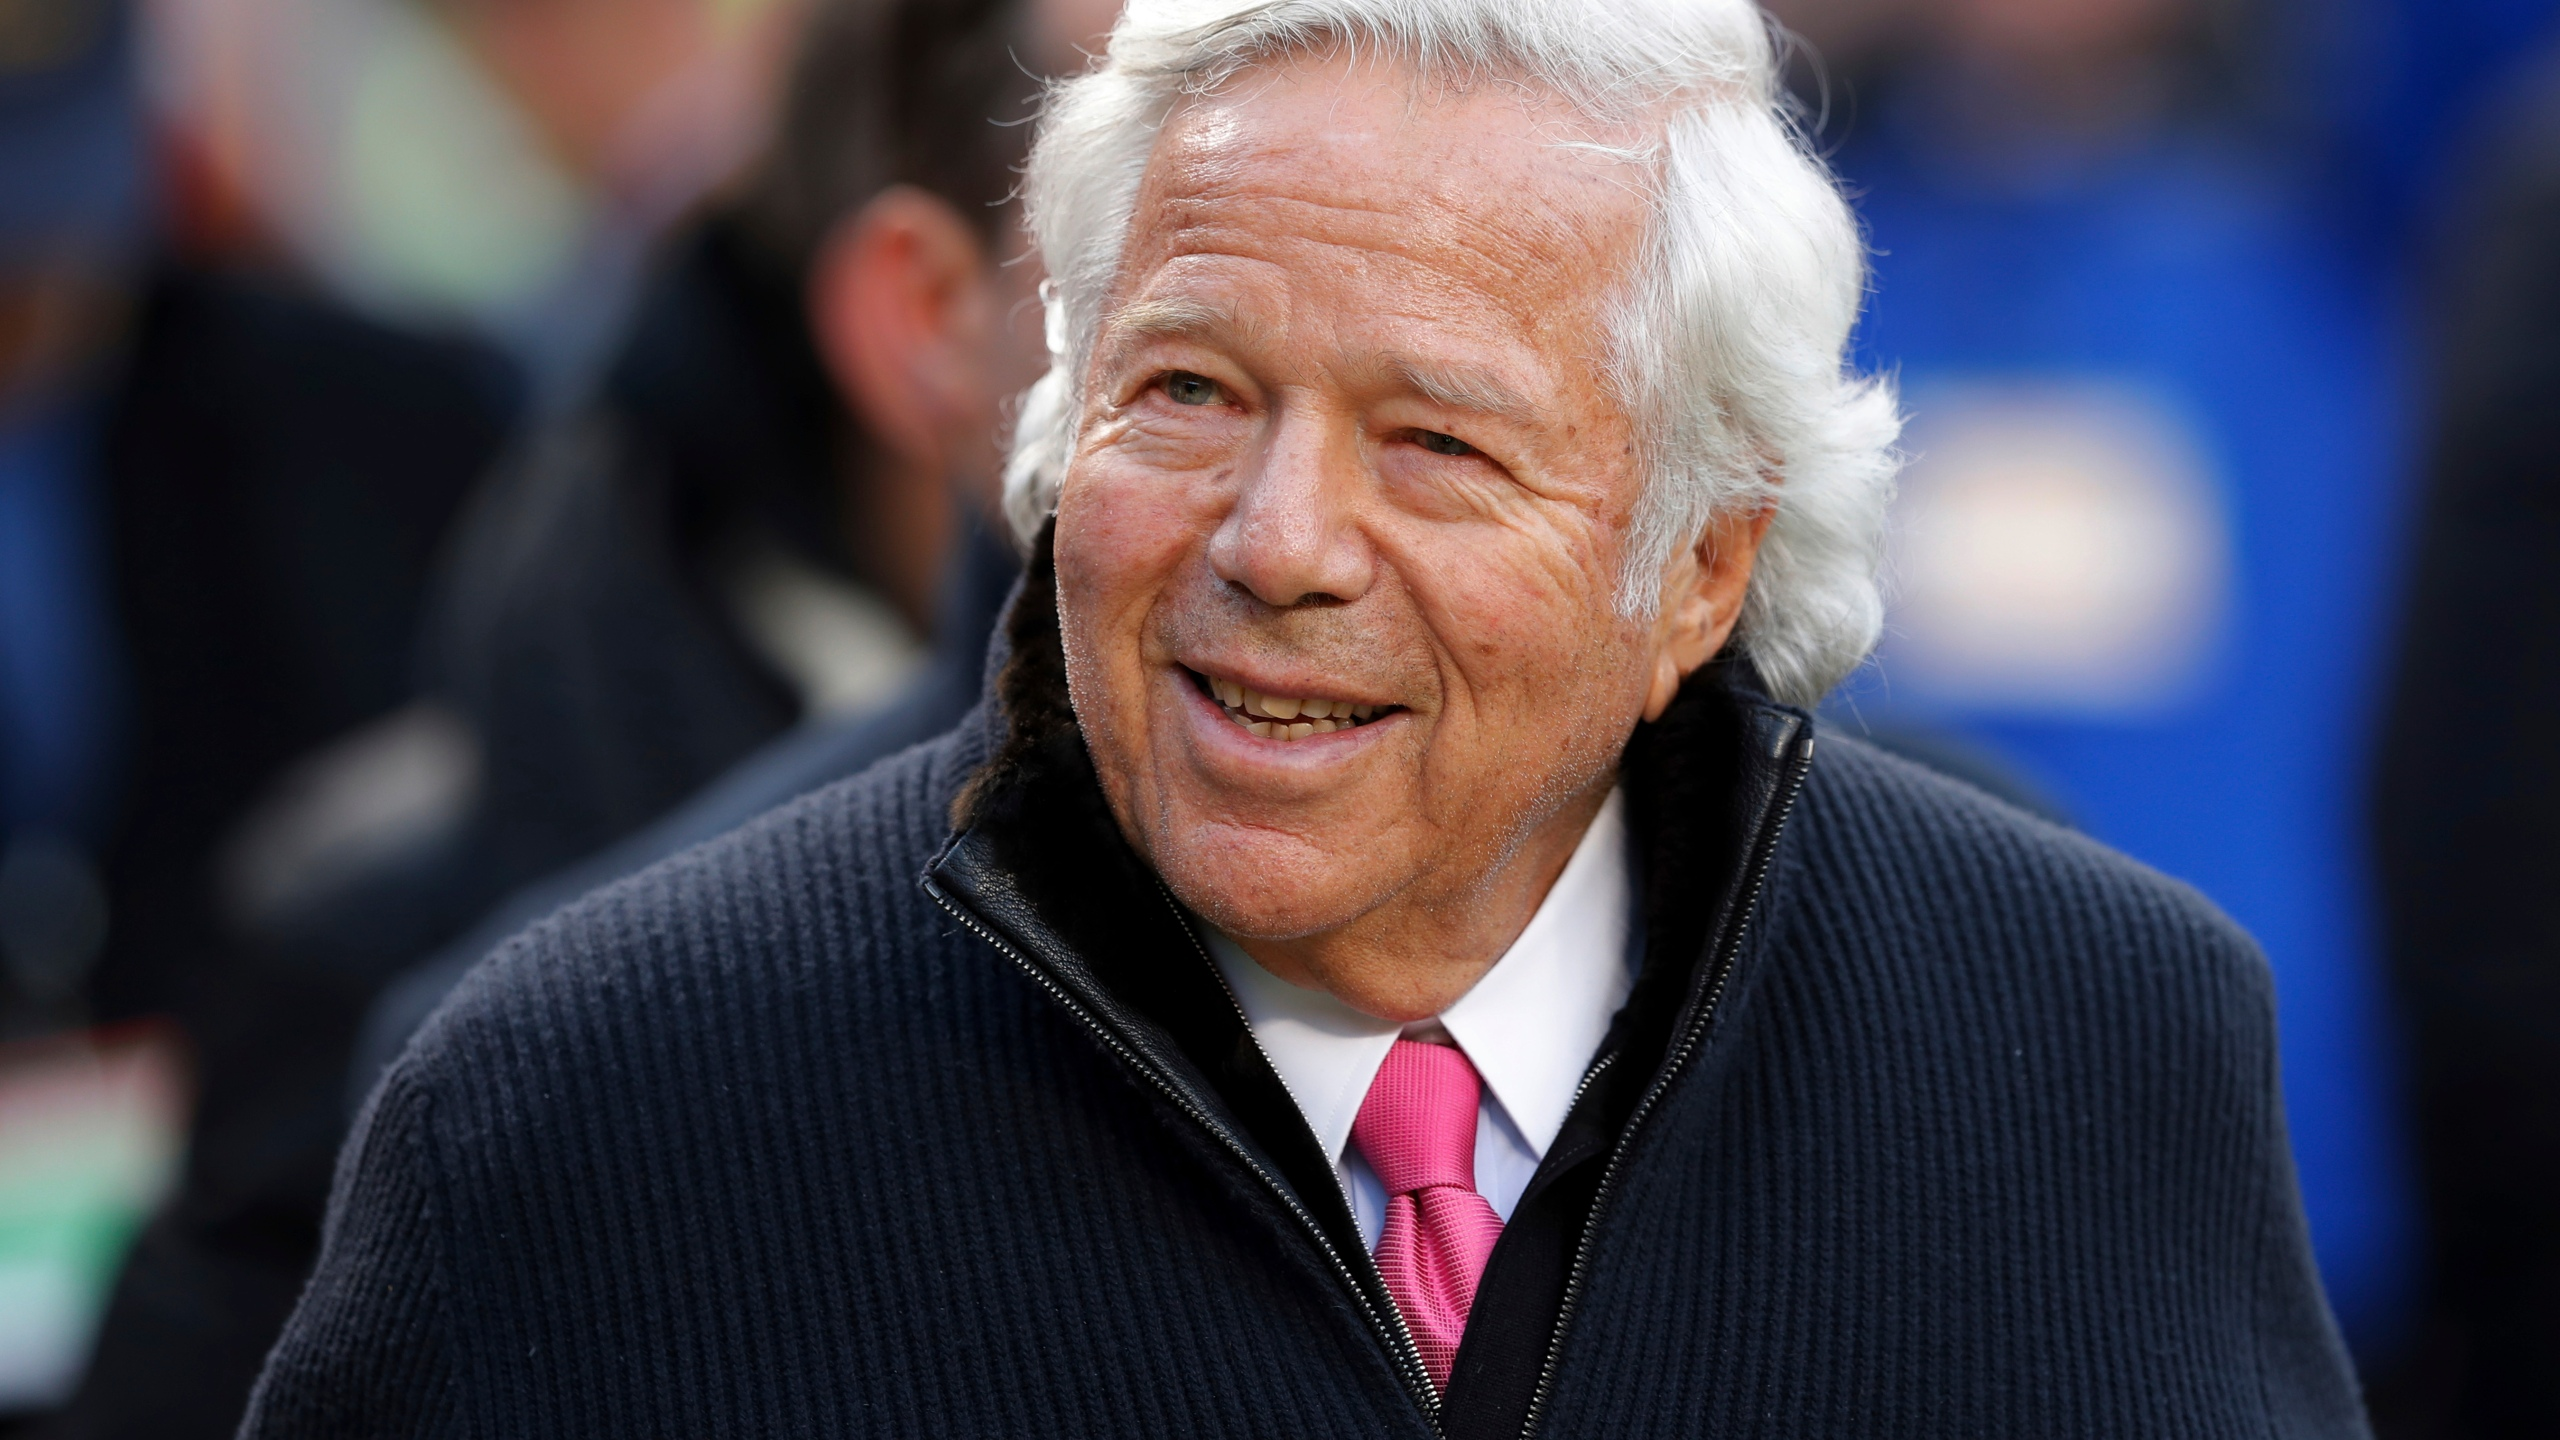 Robert_Kraft_Prostitution_Football_06258-159532.jpg88374510